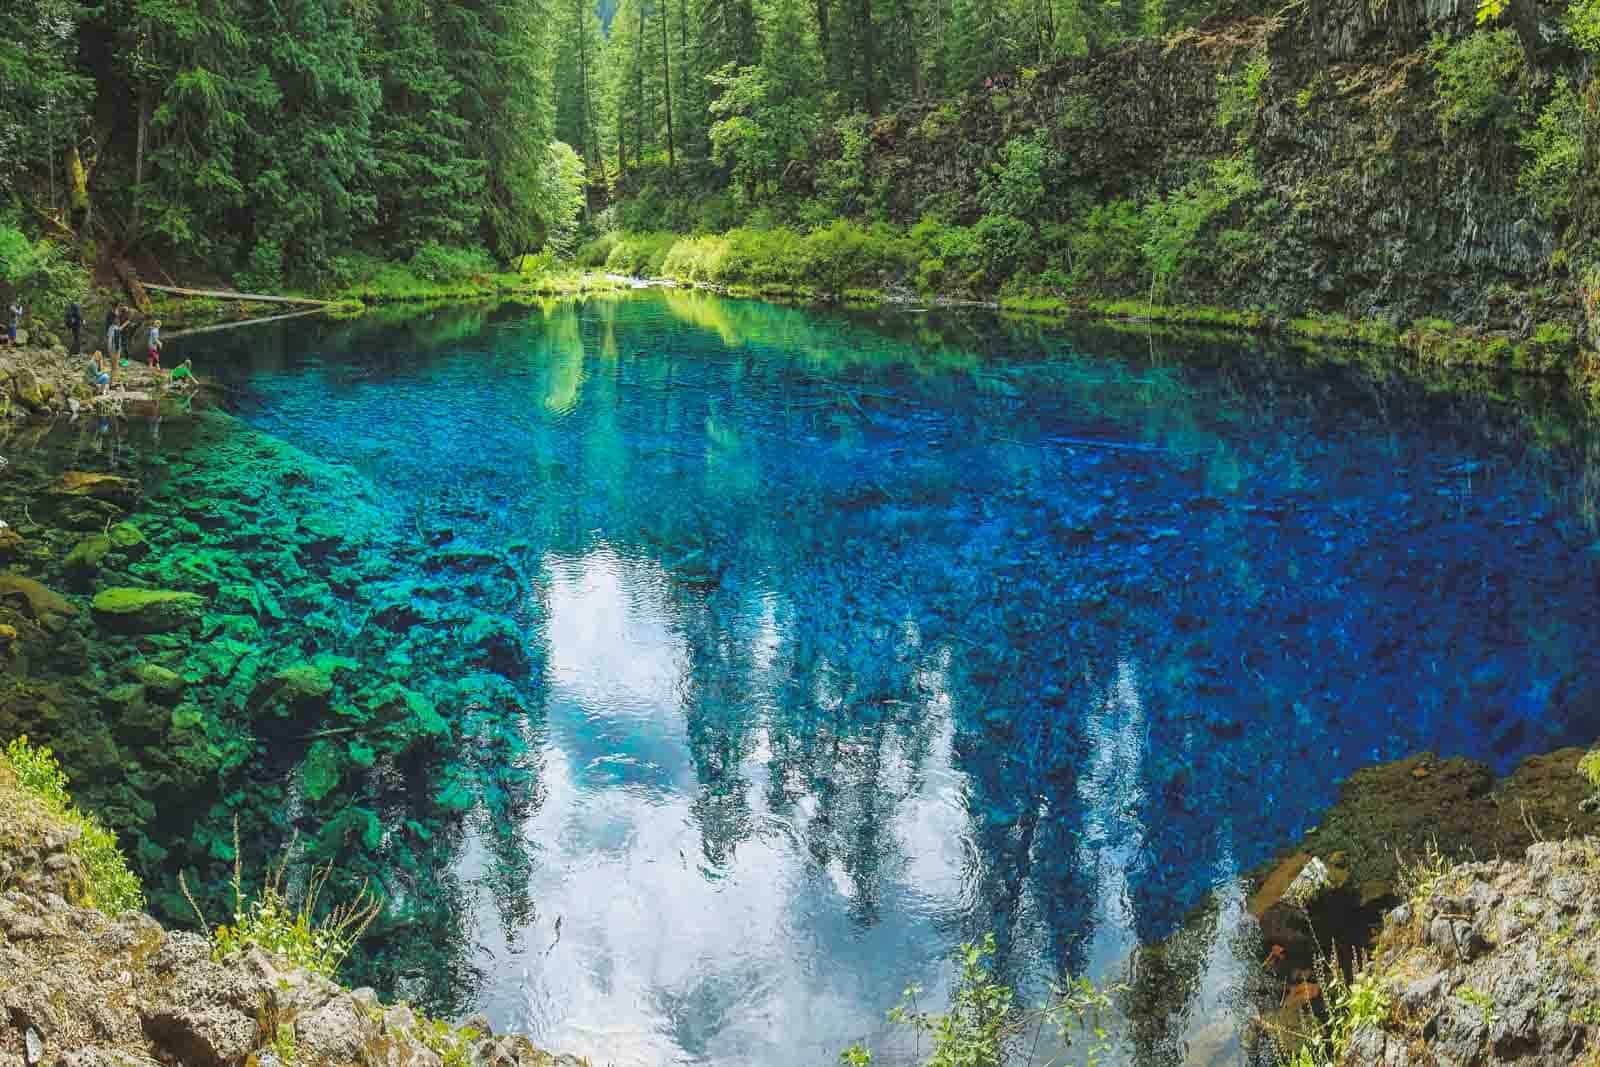 Hiking to Tamolitch Blue Pool in Central Oregon